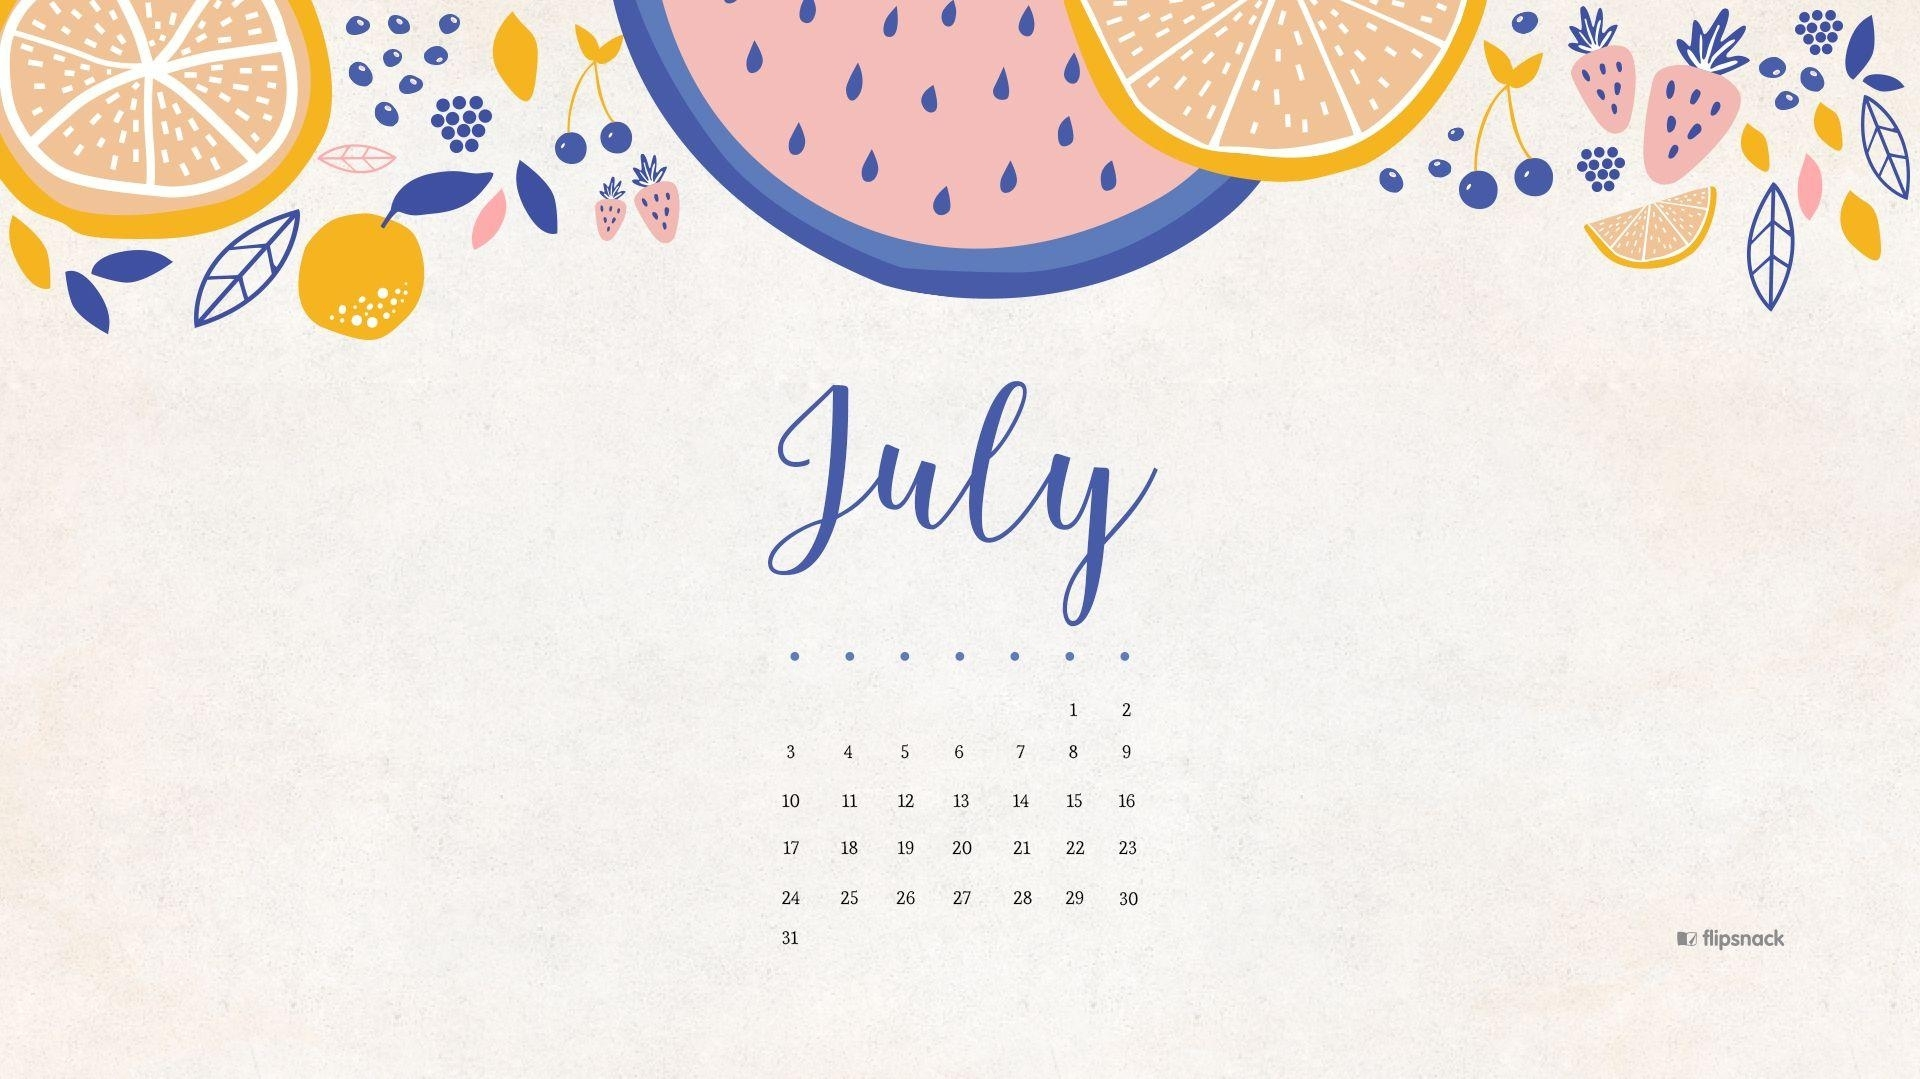 july 2017 calendar wallpapers - wallpaper cave